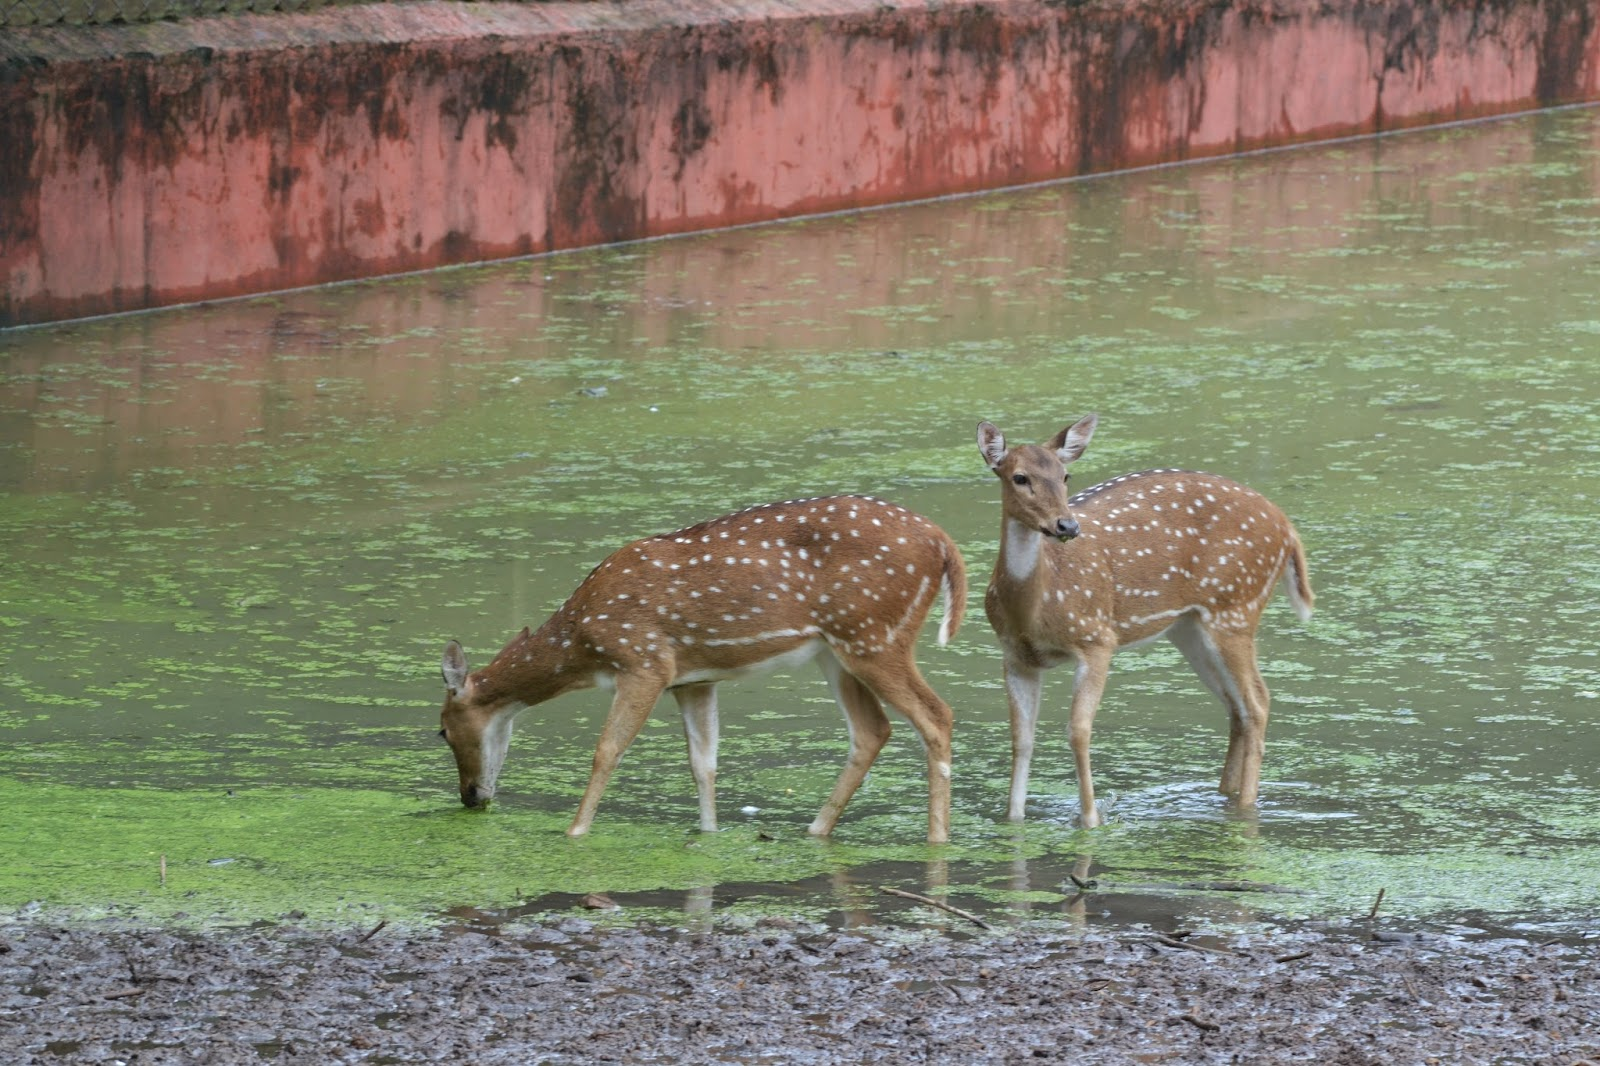 Deer  at Nandankanan zoological park